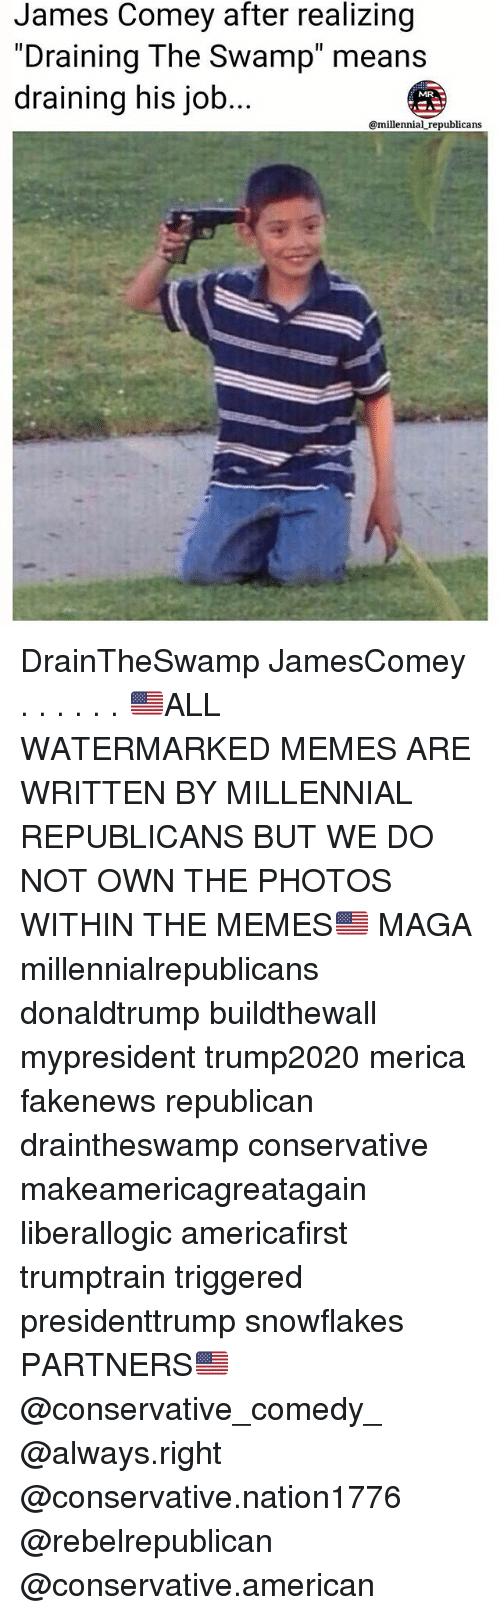 "Memes, American, and Conservative: James Comey after realizing  ""Draining The Swamp"" means  draining his job  MRA  @millennial republicans DrainTheSwamp JamesComey . . . . . . 🇺🇸ALL WATERMARKED MEMES ARE WRITTEN BY MILLENNIAL REPUBLICANS BUT WE DO NOT OWN THE PHOTOS WITHIN THE MEMES🇺🇸 MAGA millennialrepublicans donaldtrump buildthewall mypresident trump2020 merica fakenews republican draintheswamp conservative makeamericagreatagain liberallogic americafirst trumptrain triggered presidenttrump snowflakes PARTNERS🇺🇸 @conservative_comedy_ @always.right @conservative.nation1776 @rebelrepublican @conservative.american"